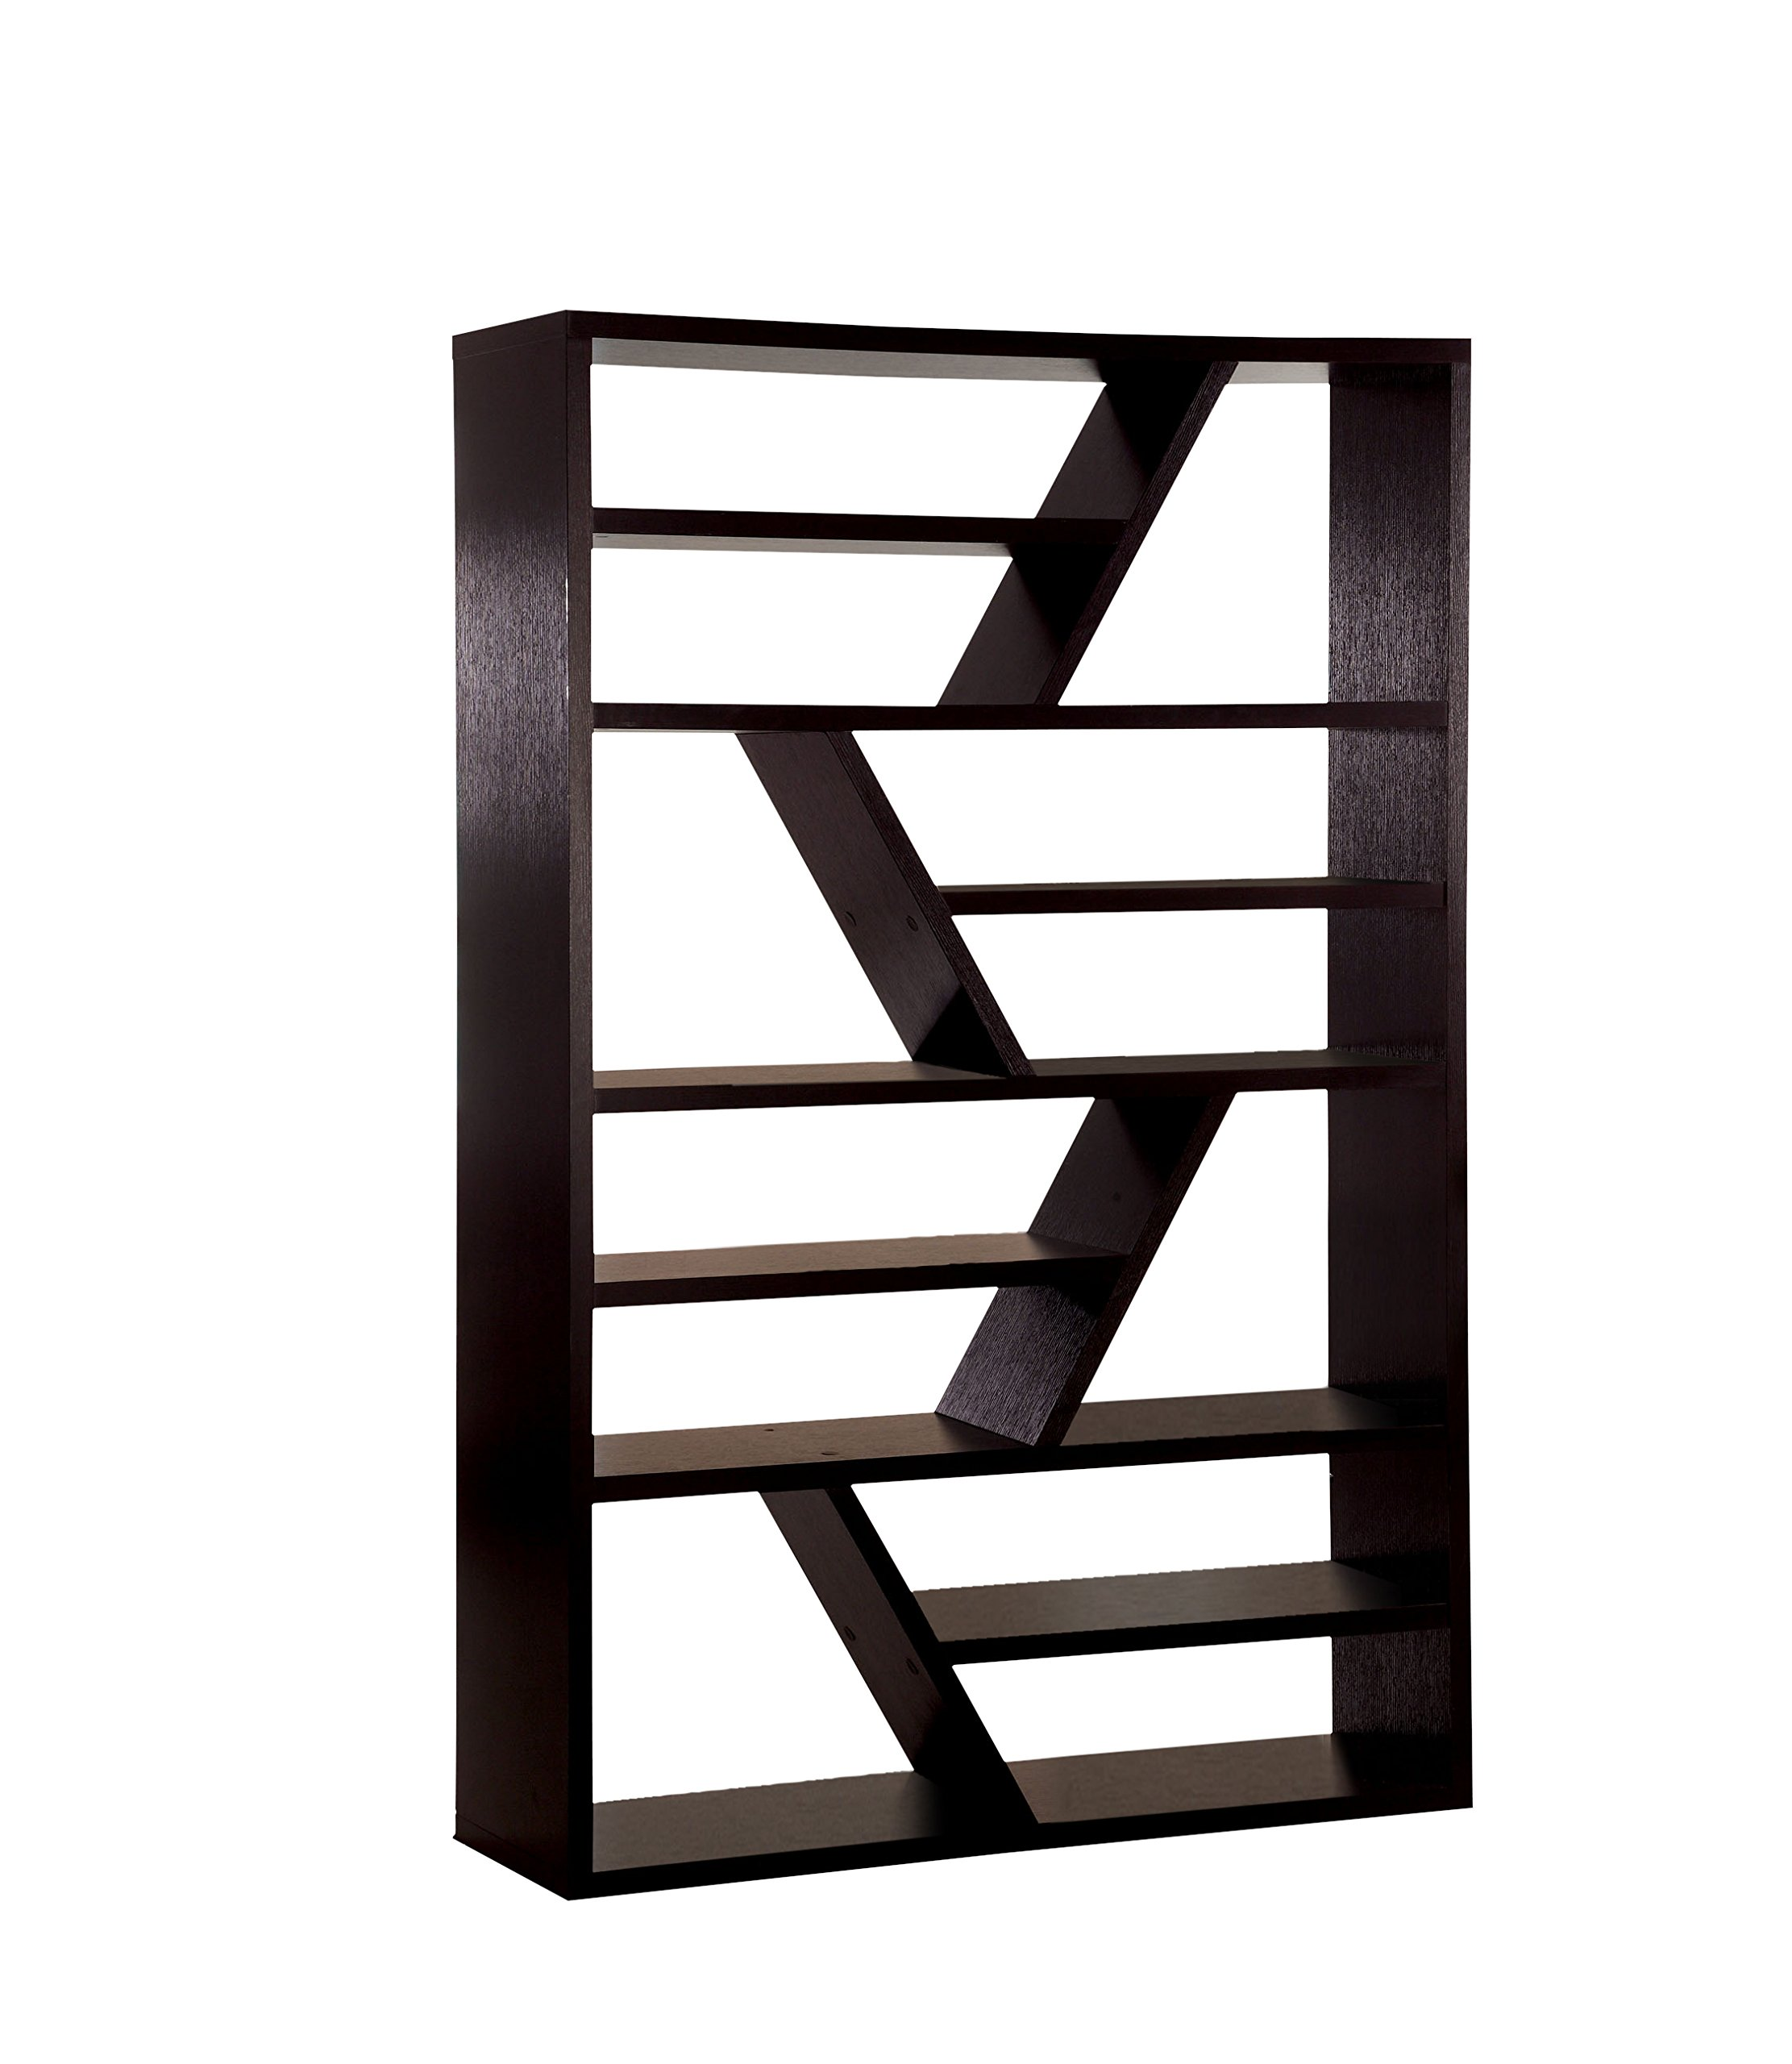 Furniture of America Zakari Modern Display Case, Espresso by Furniture of America